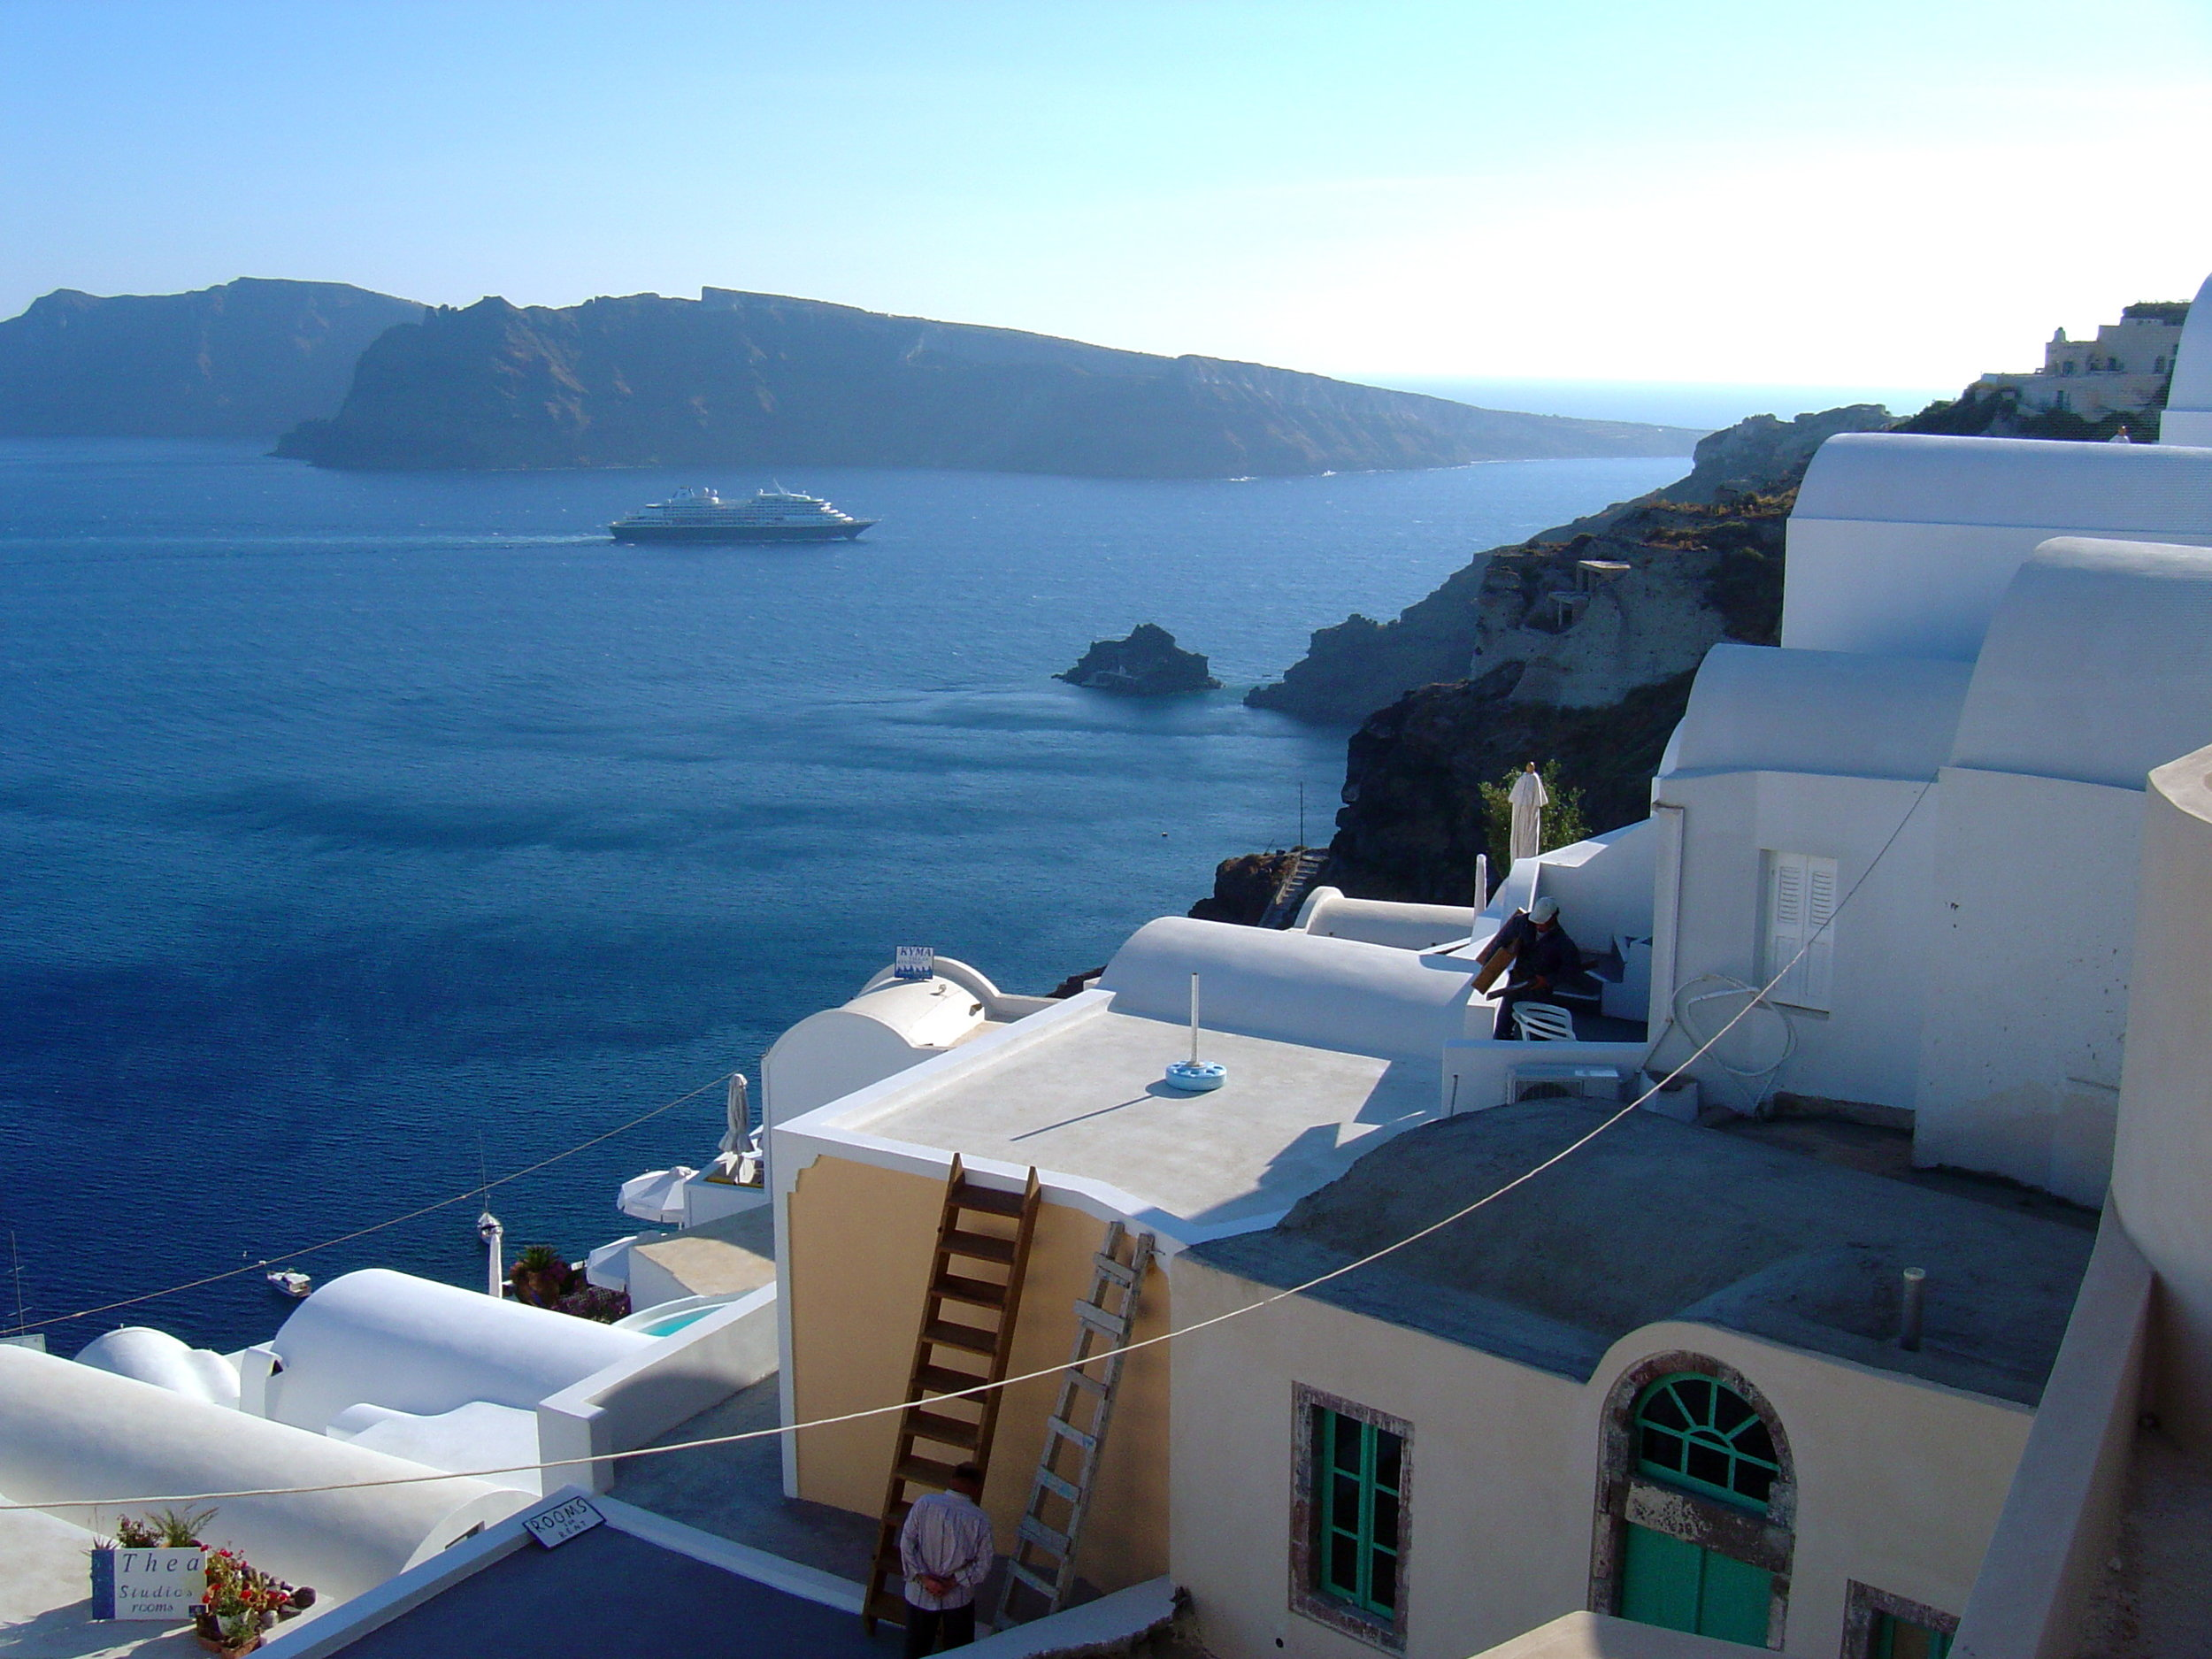 Why Buildings In Greece Are White and Blue